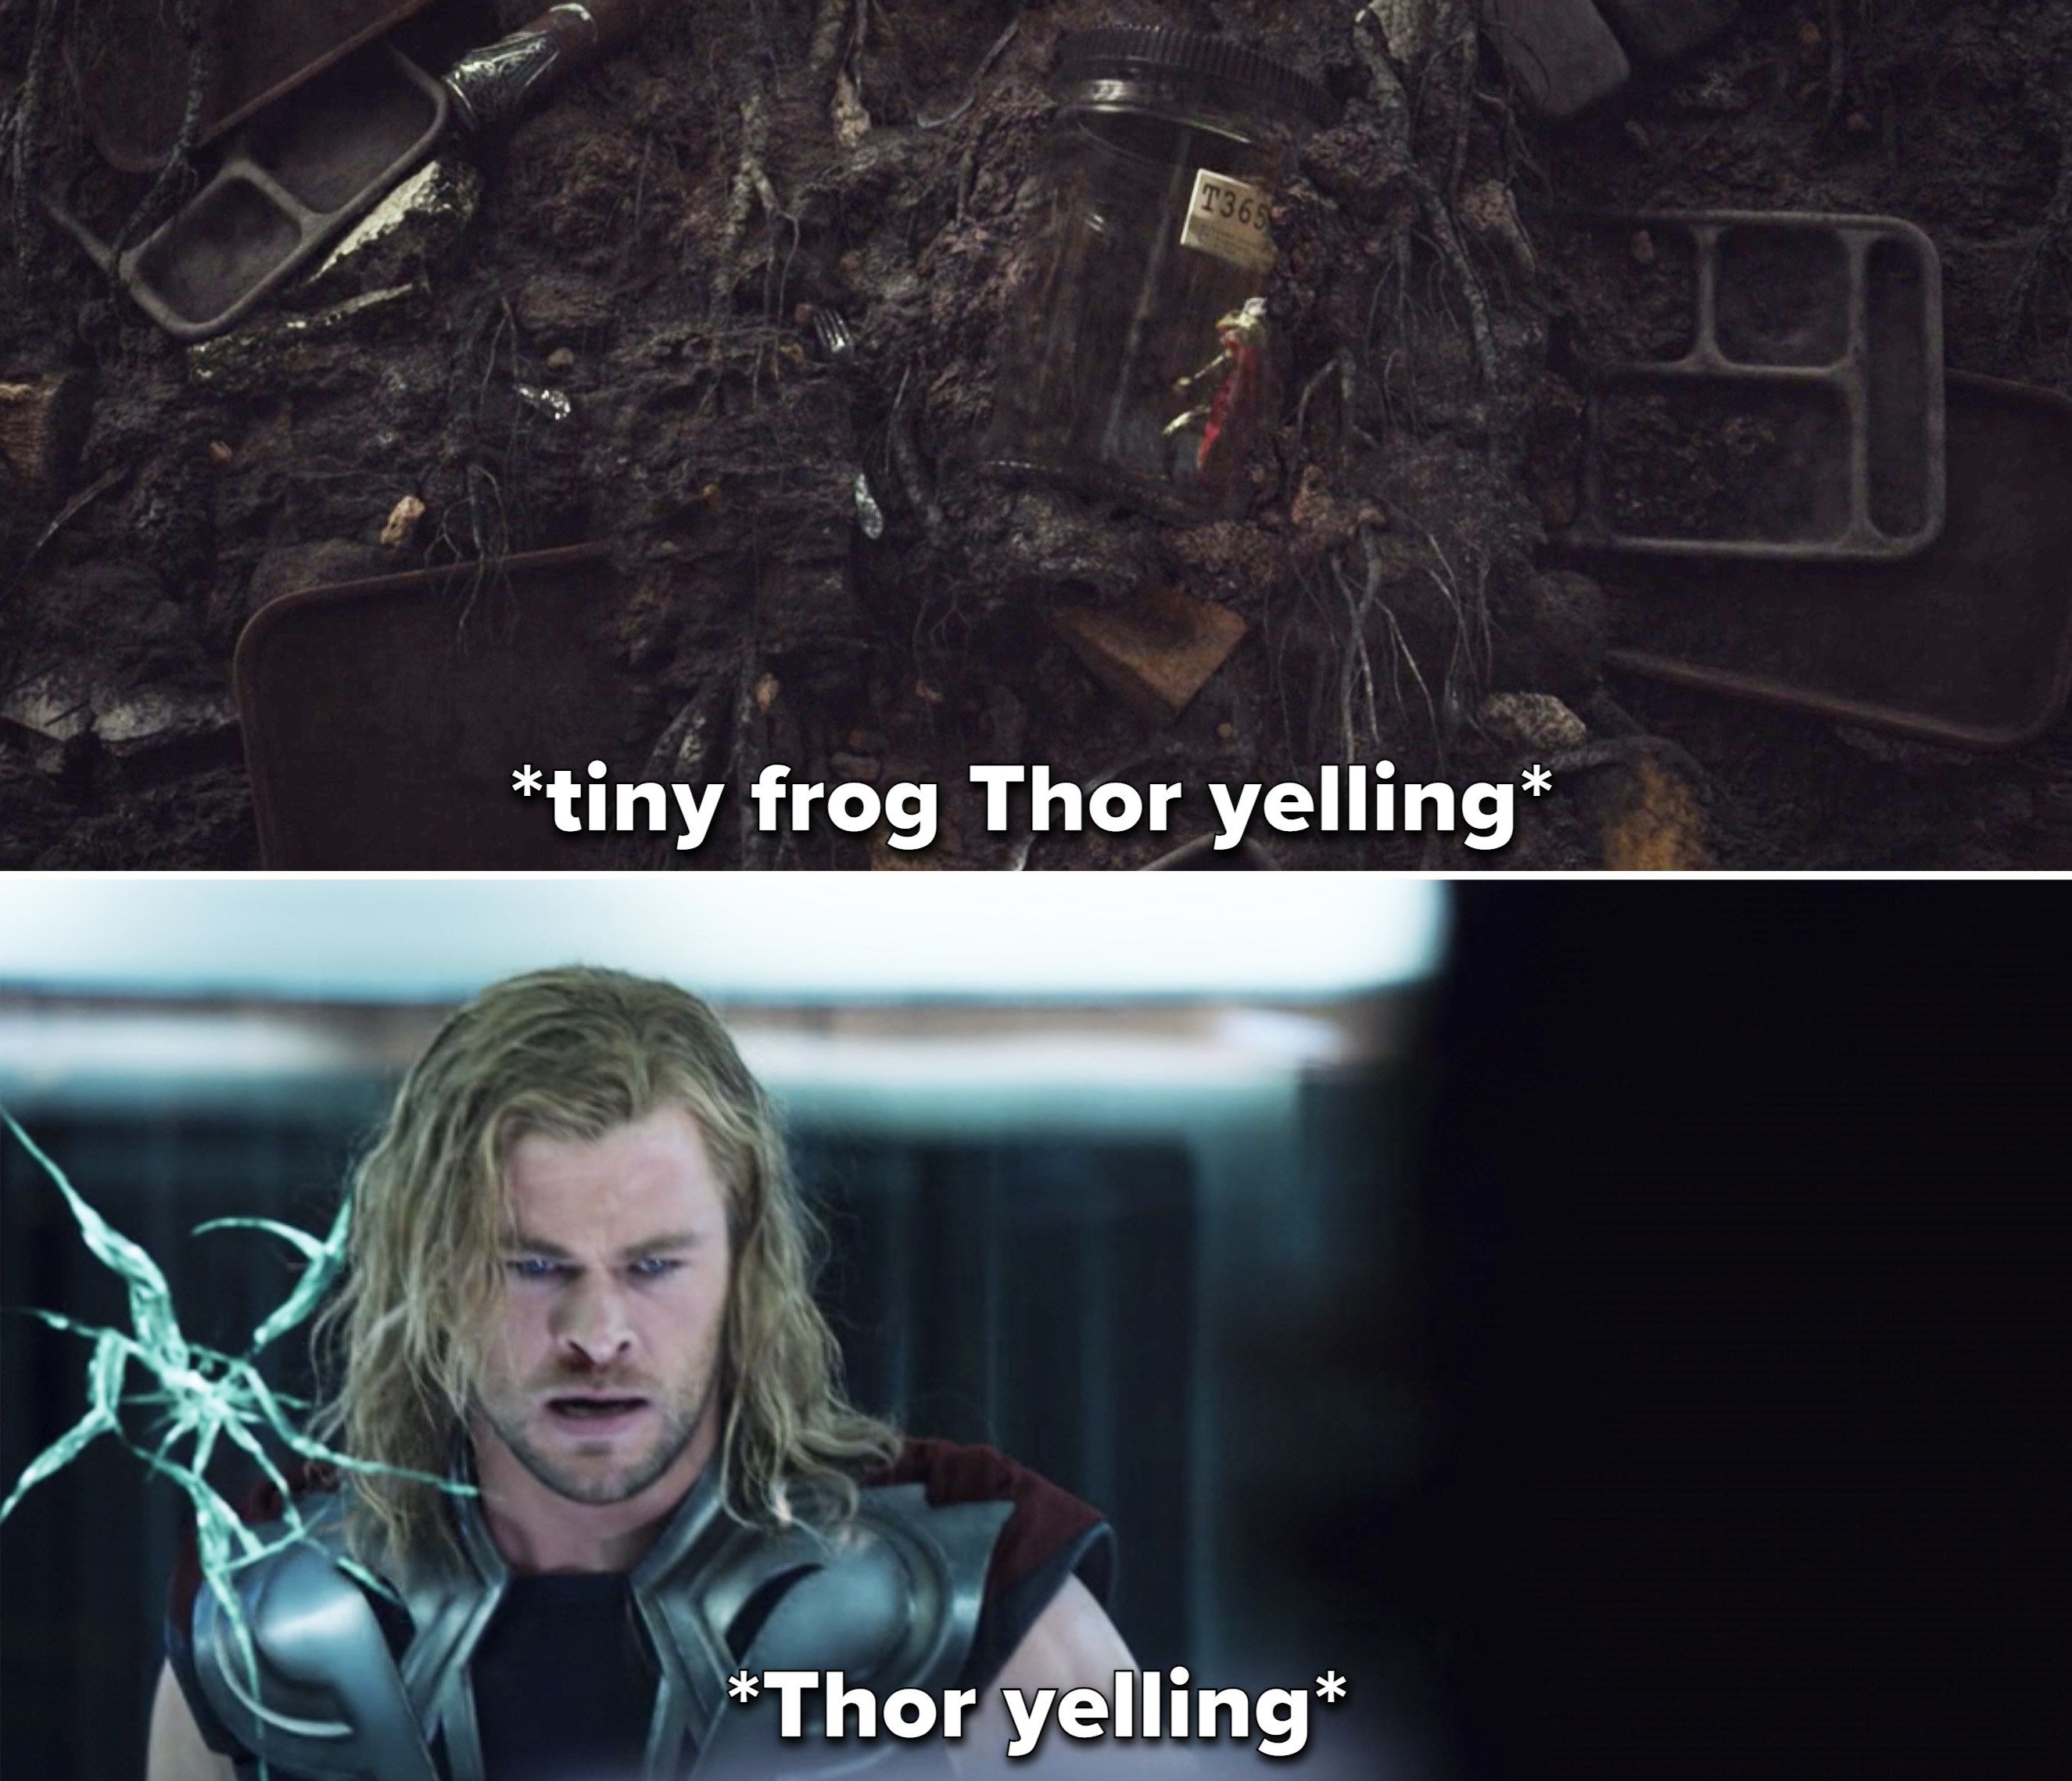 Frog Thor trapped in a glass bottle vs. Thor trapped behind glass